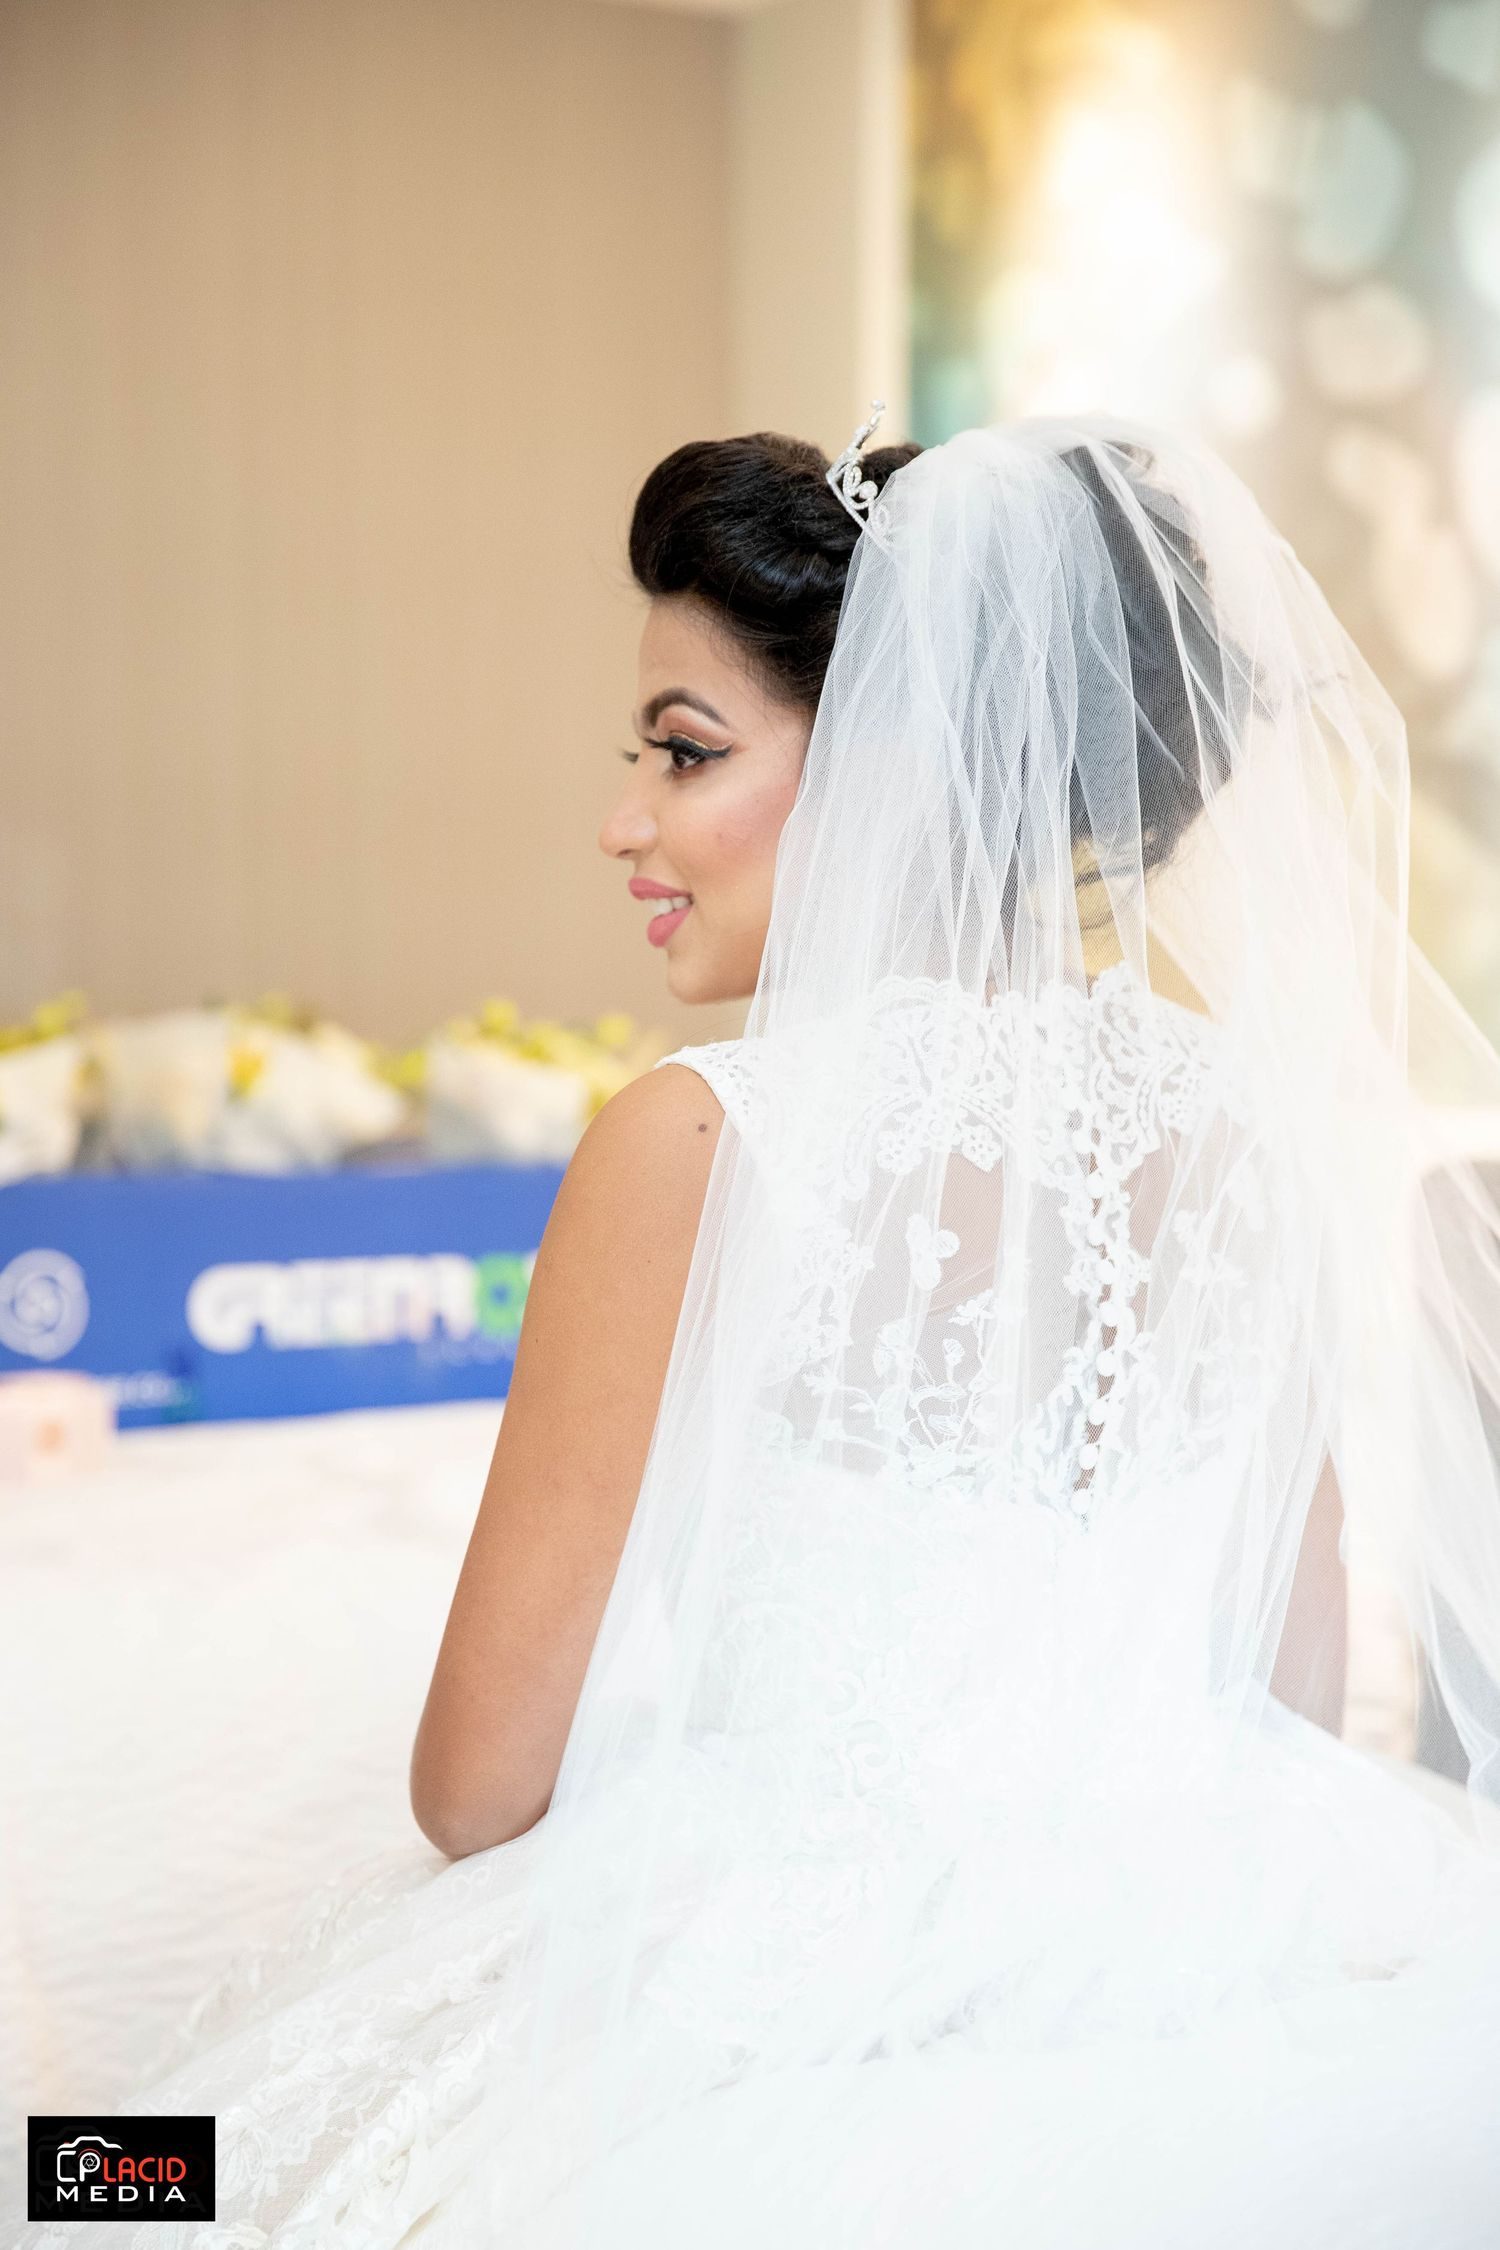 Beutiful Bride on her wedding day